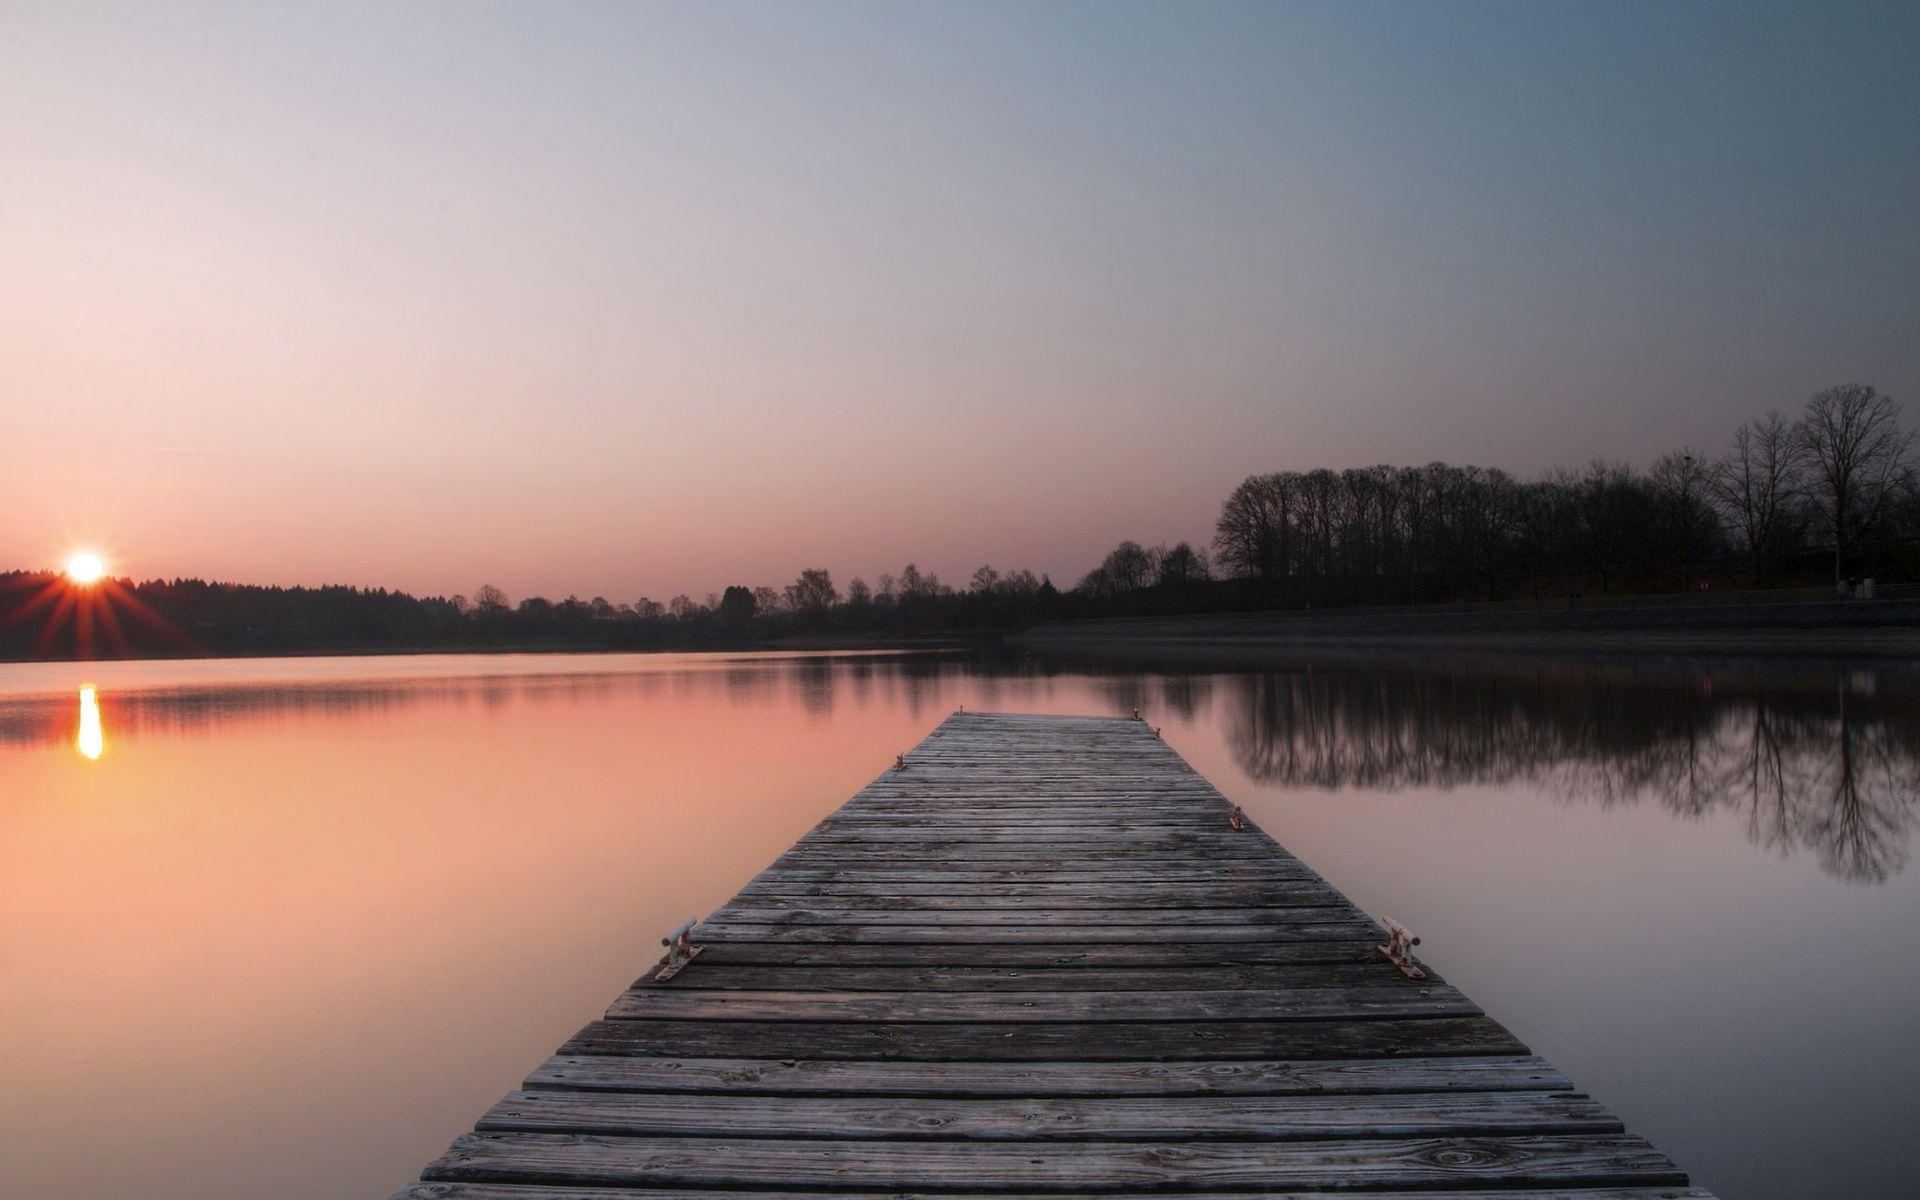 pier-on-the-calm-lake